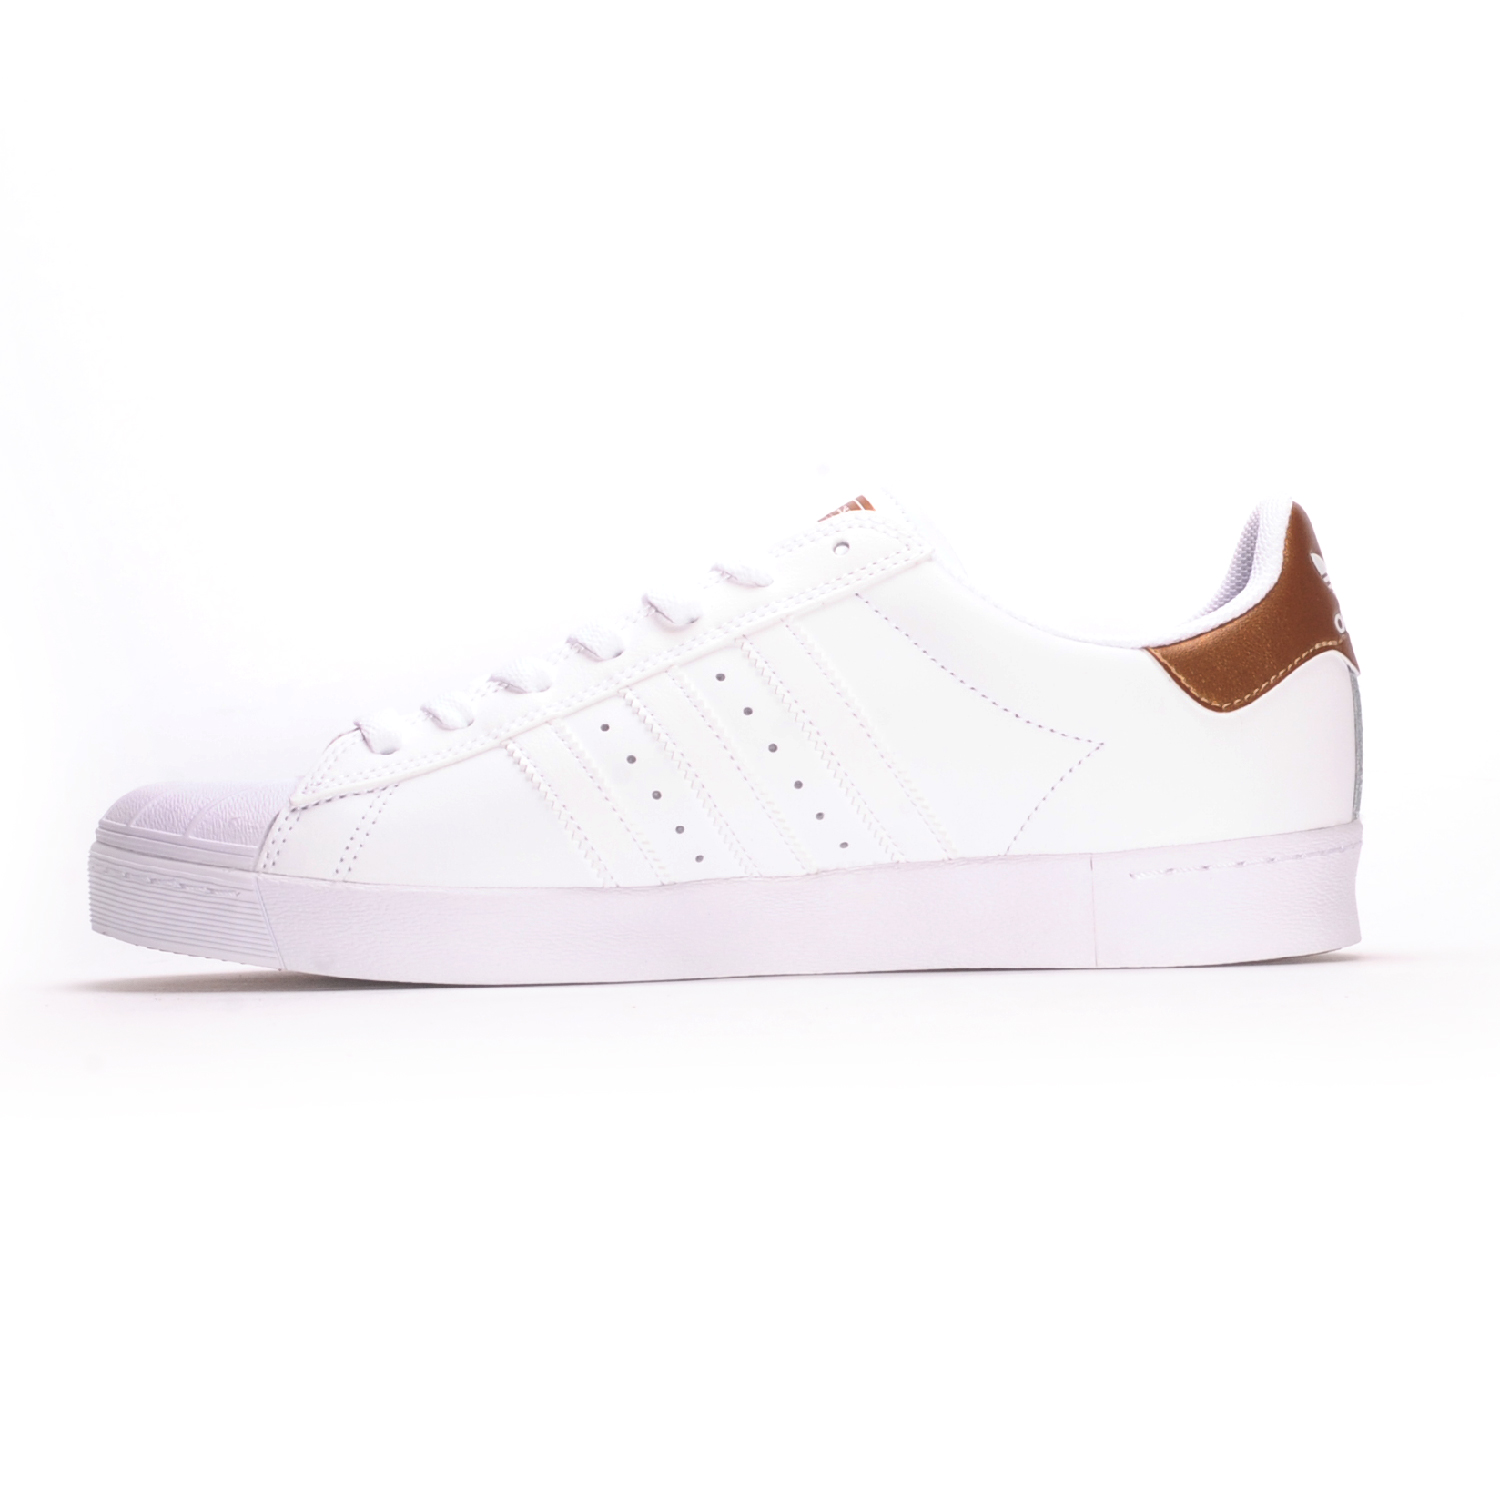 Cheap Adidas Superstar Vulc ADV Shoes FTWR White / Core Black